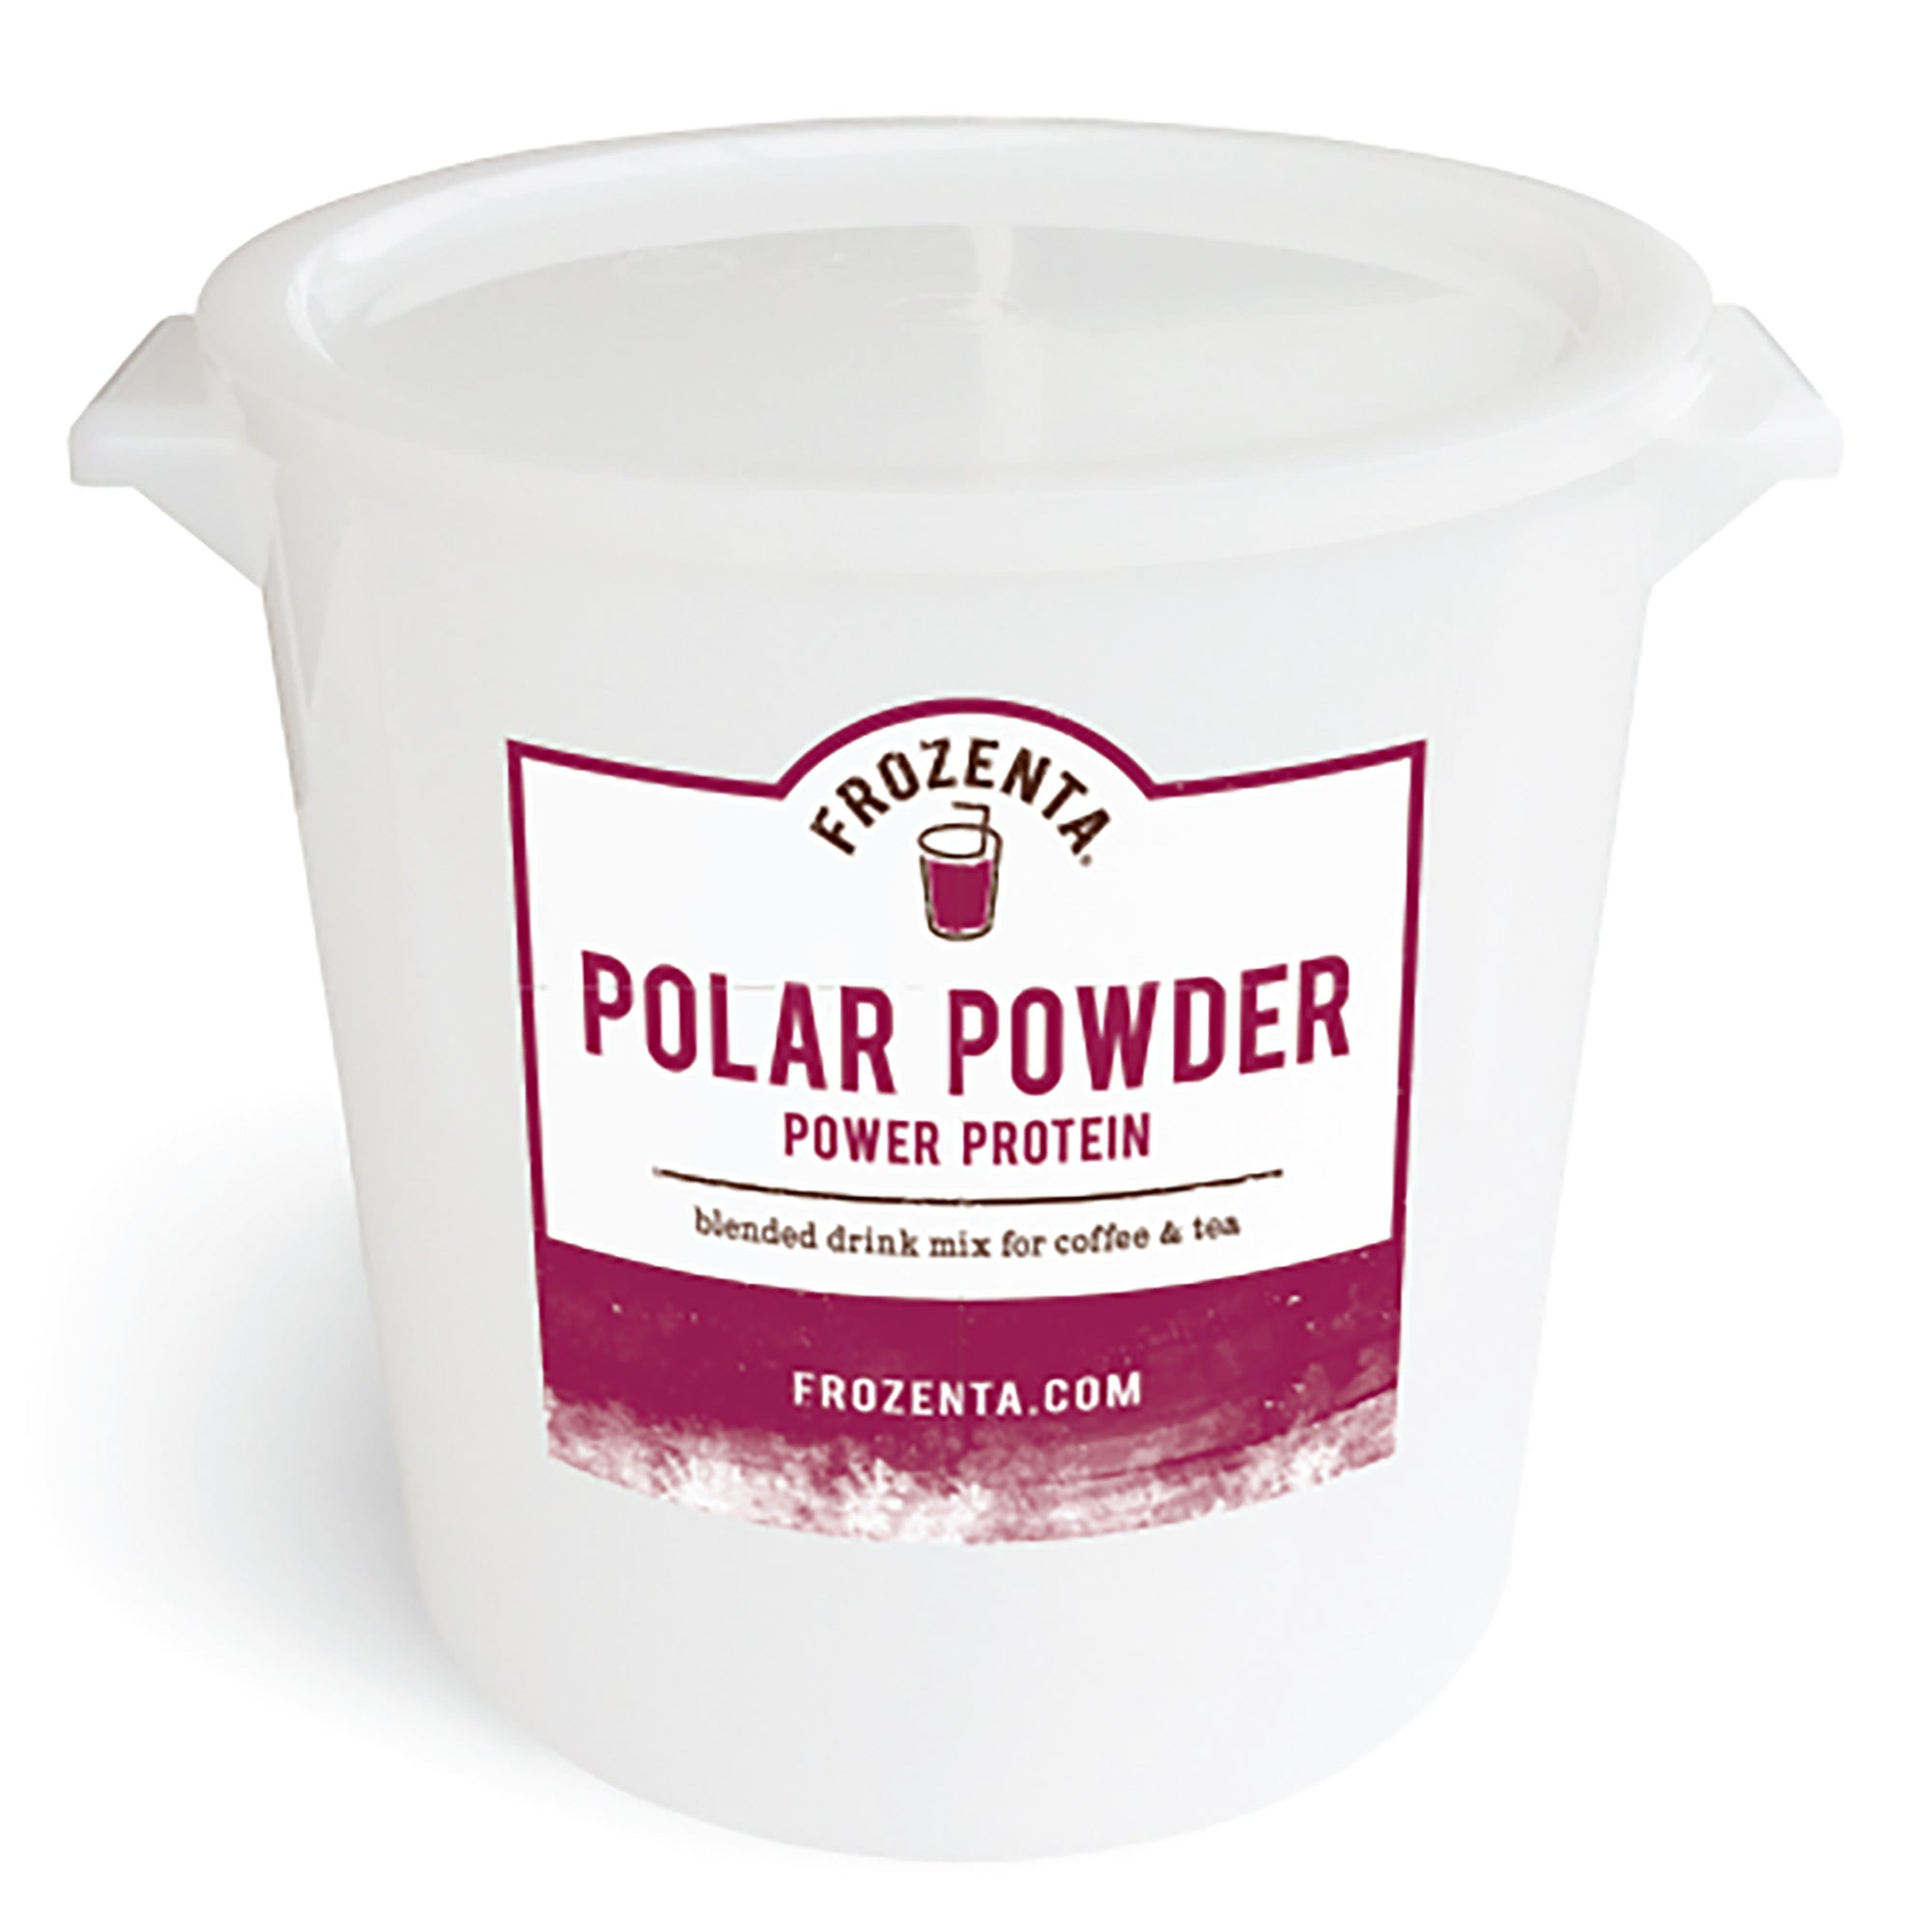 Protein Performance Polar Powder Blended Drink Mix Mixes Sauces For Coffee Shop Drinks Frozenta